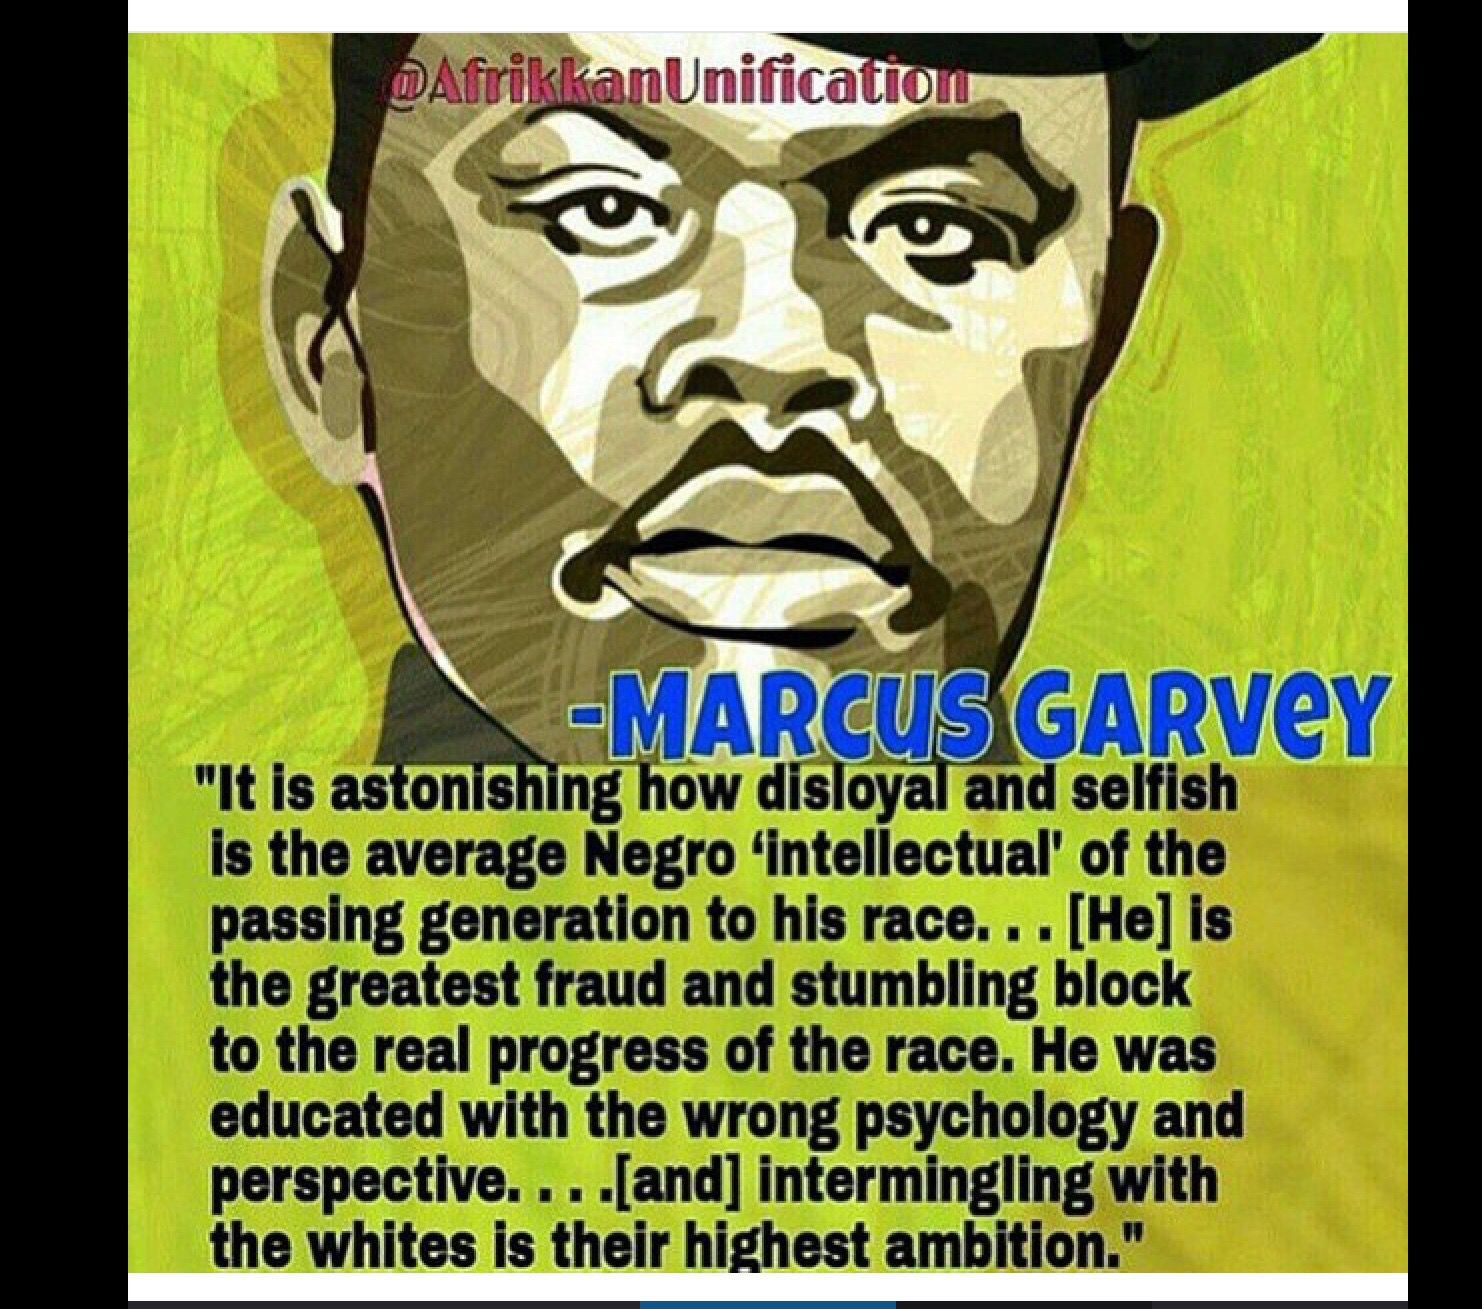 marcus garvey essay garvey marcusgarvey garveyism panafricanism on  best images about marcus garvey dom fighters 17 best images about marcus garvey dom fighters and